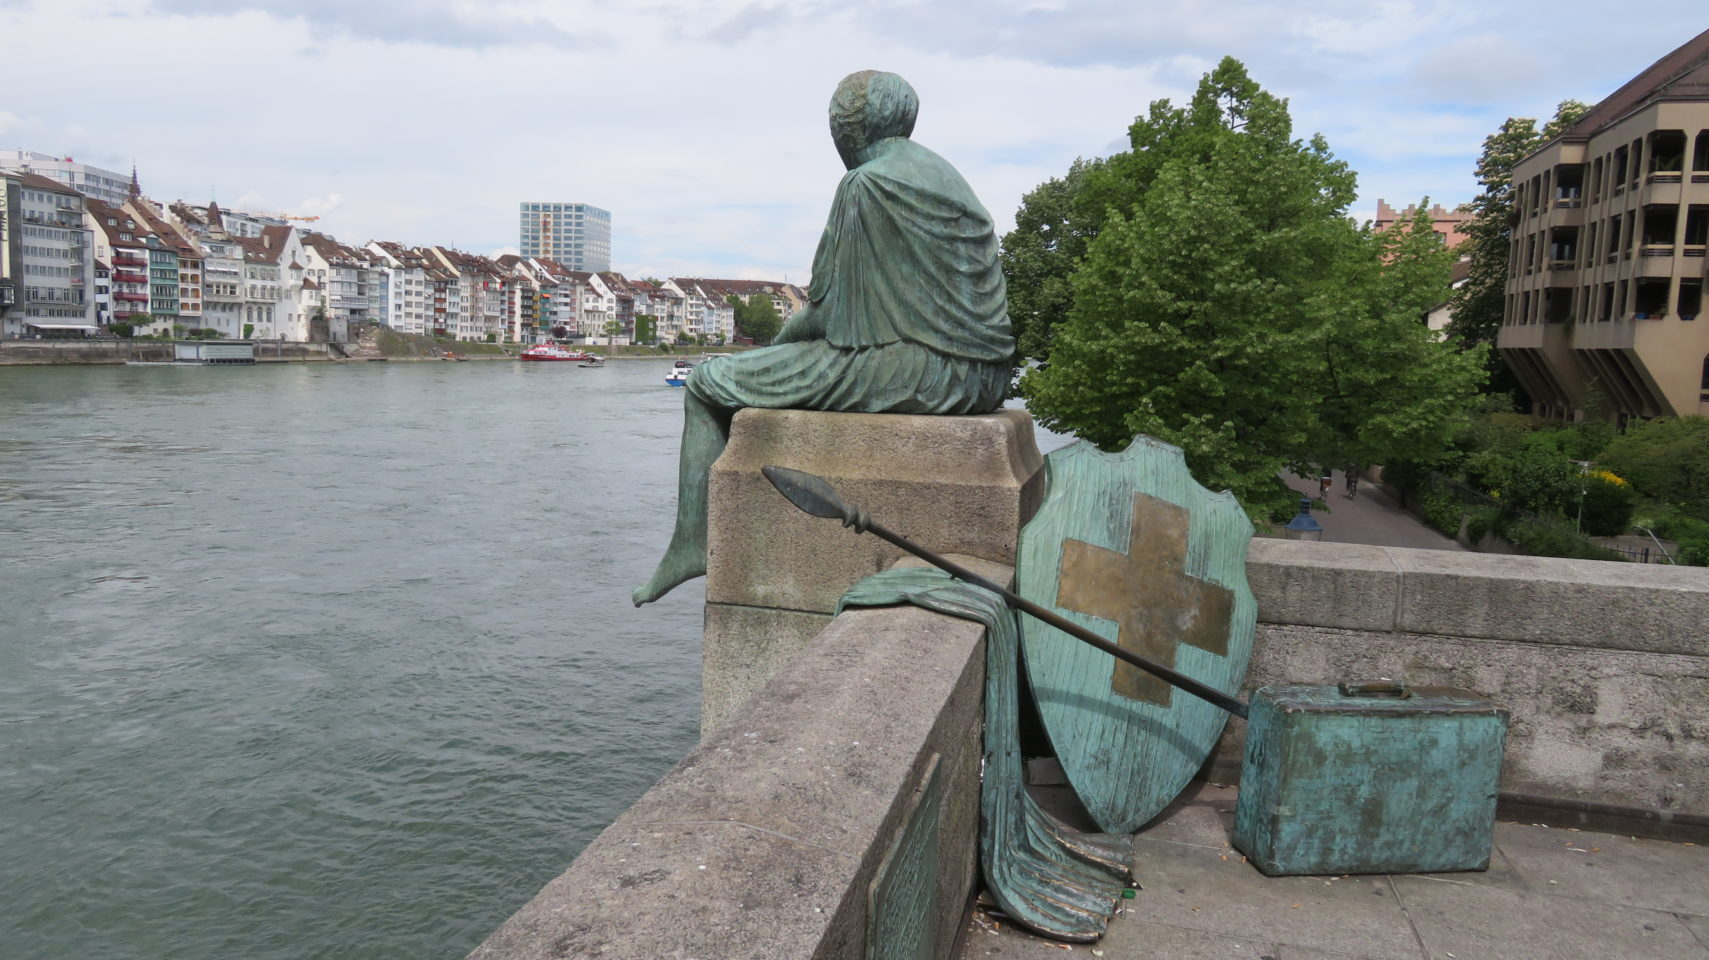 Helvetia on the Journey by Bettina Eichin on the terrace of the Mittlere Brucke in Basel Switzerland